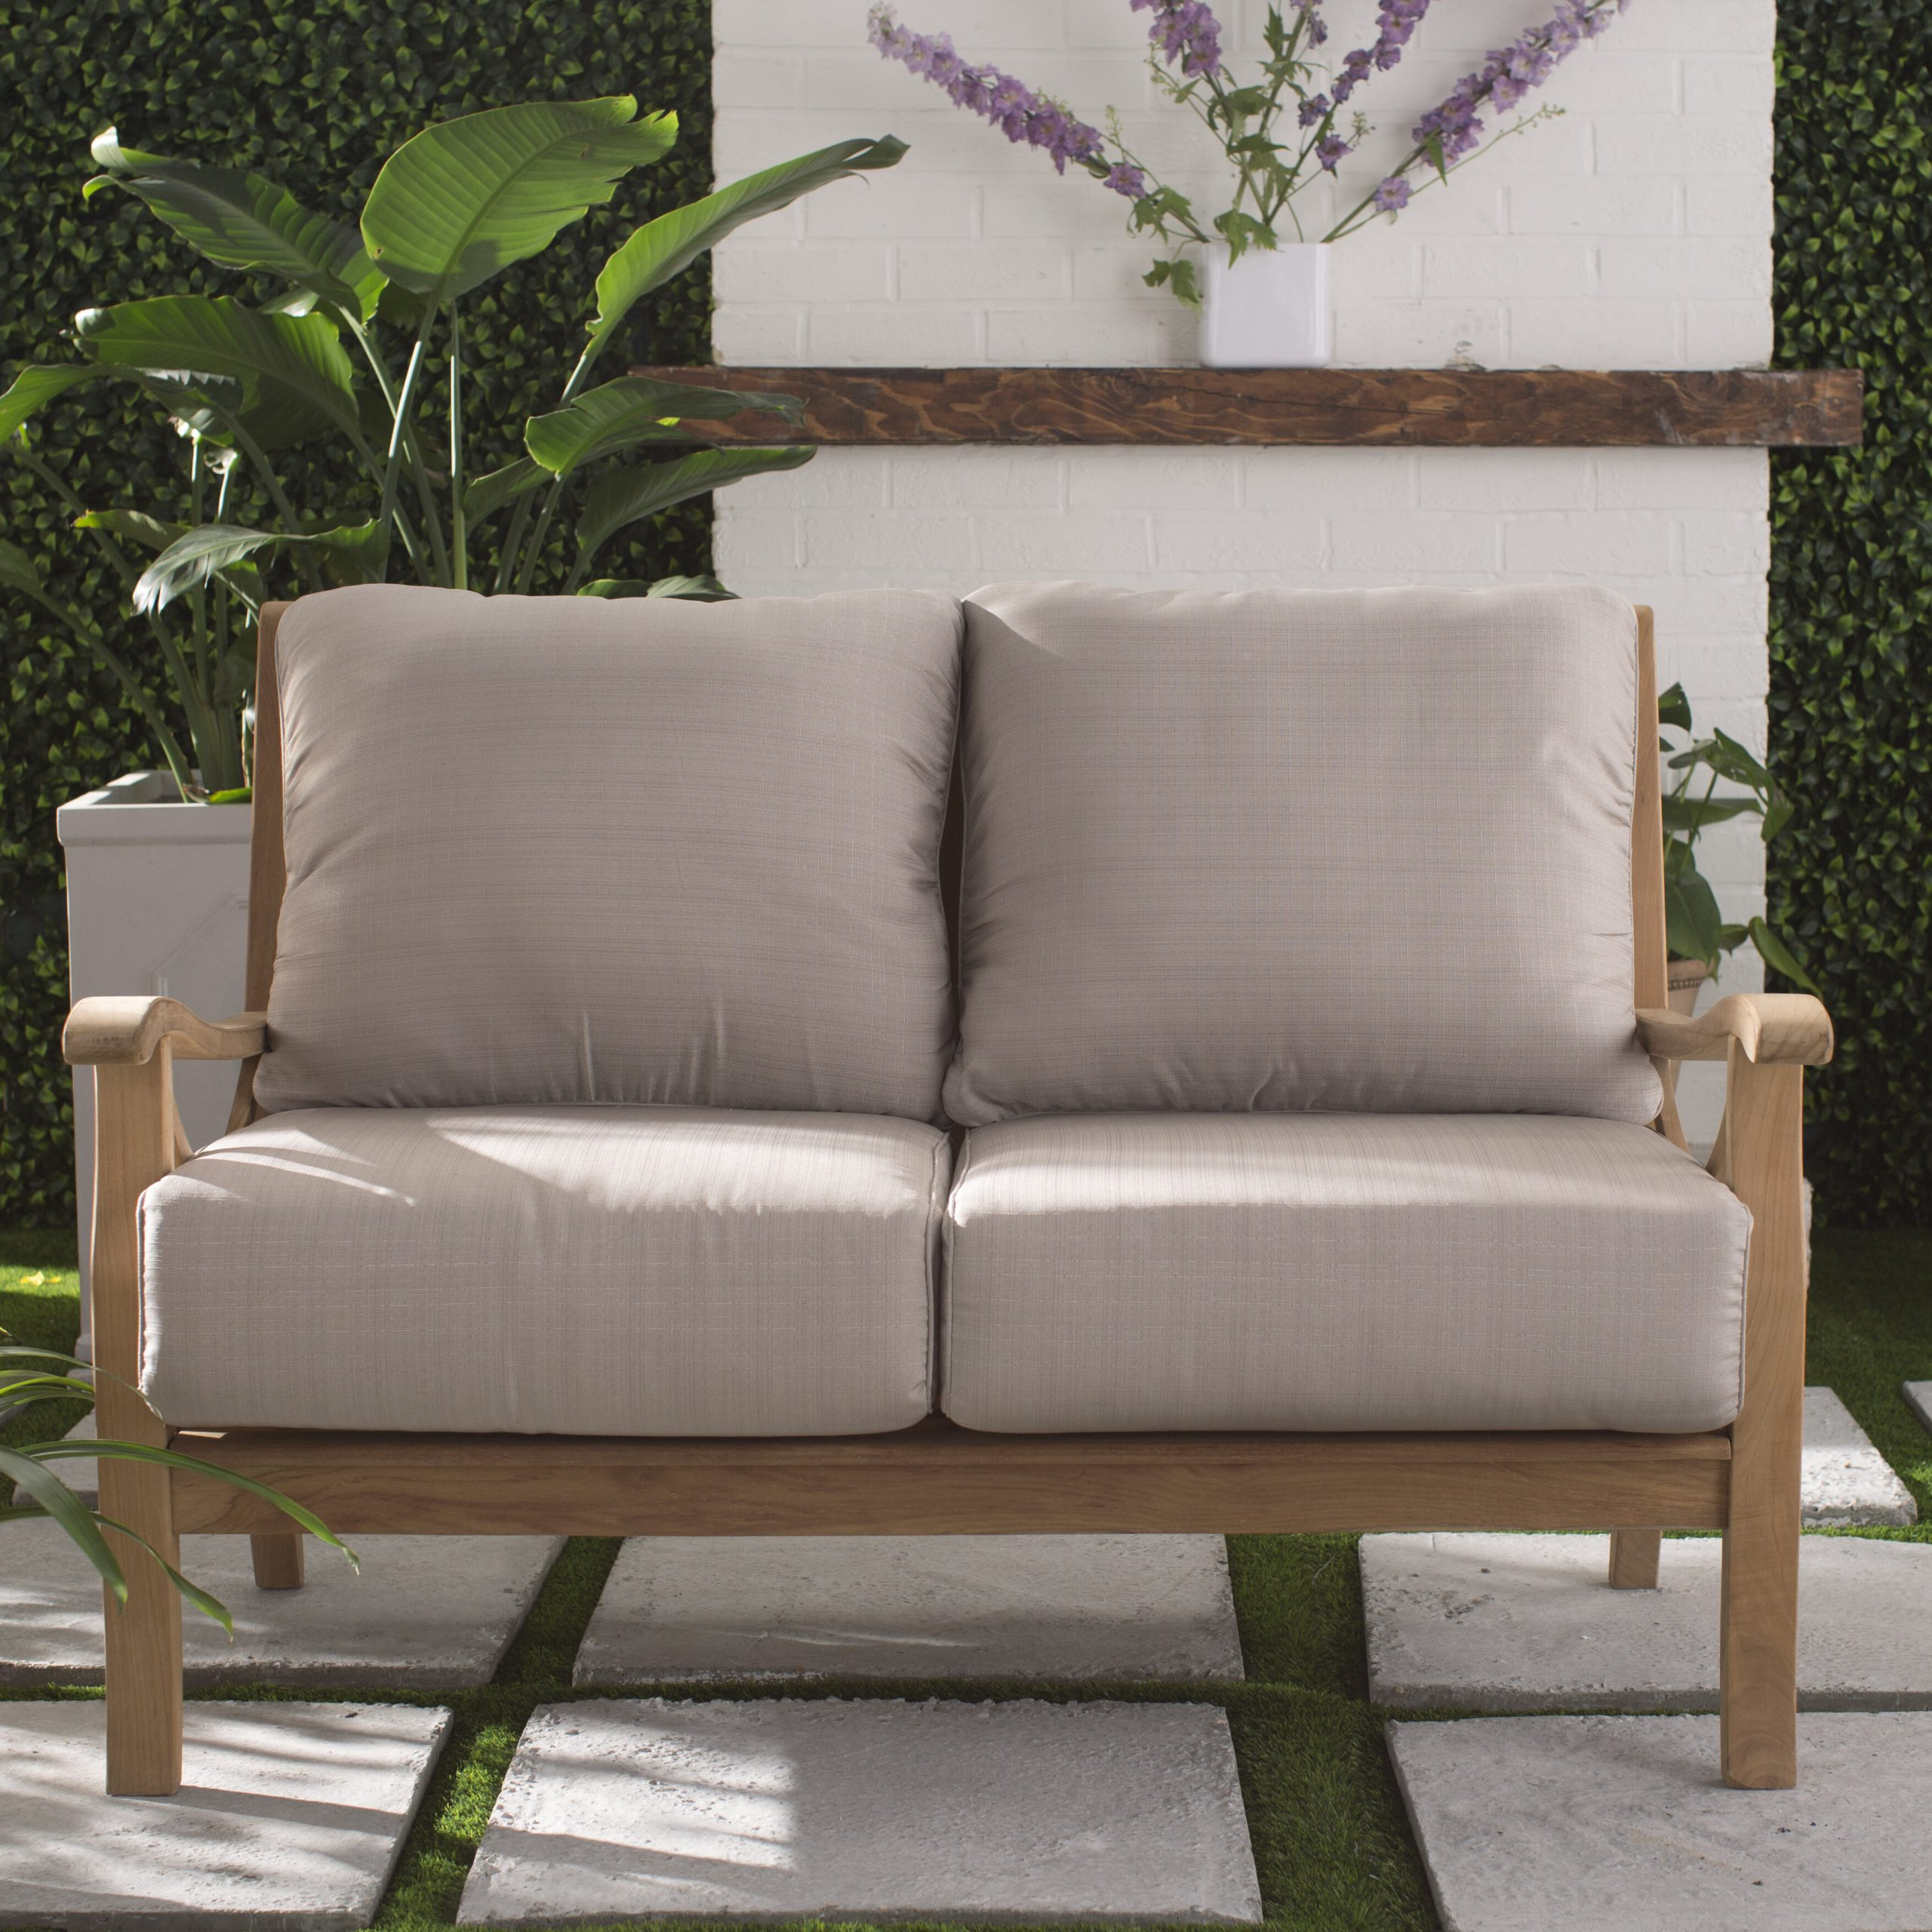 Newest Hagler Outdoor Loveseats With Cushions Within Brunswick Teak Loveseat With Cushions (Gallery 18 of 25)